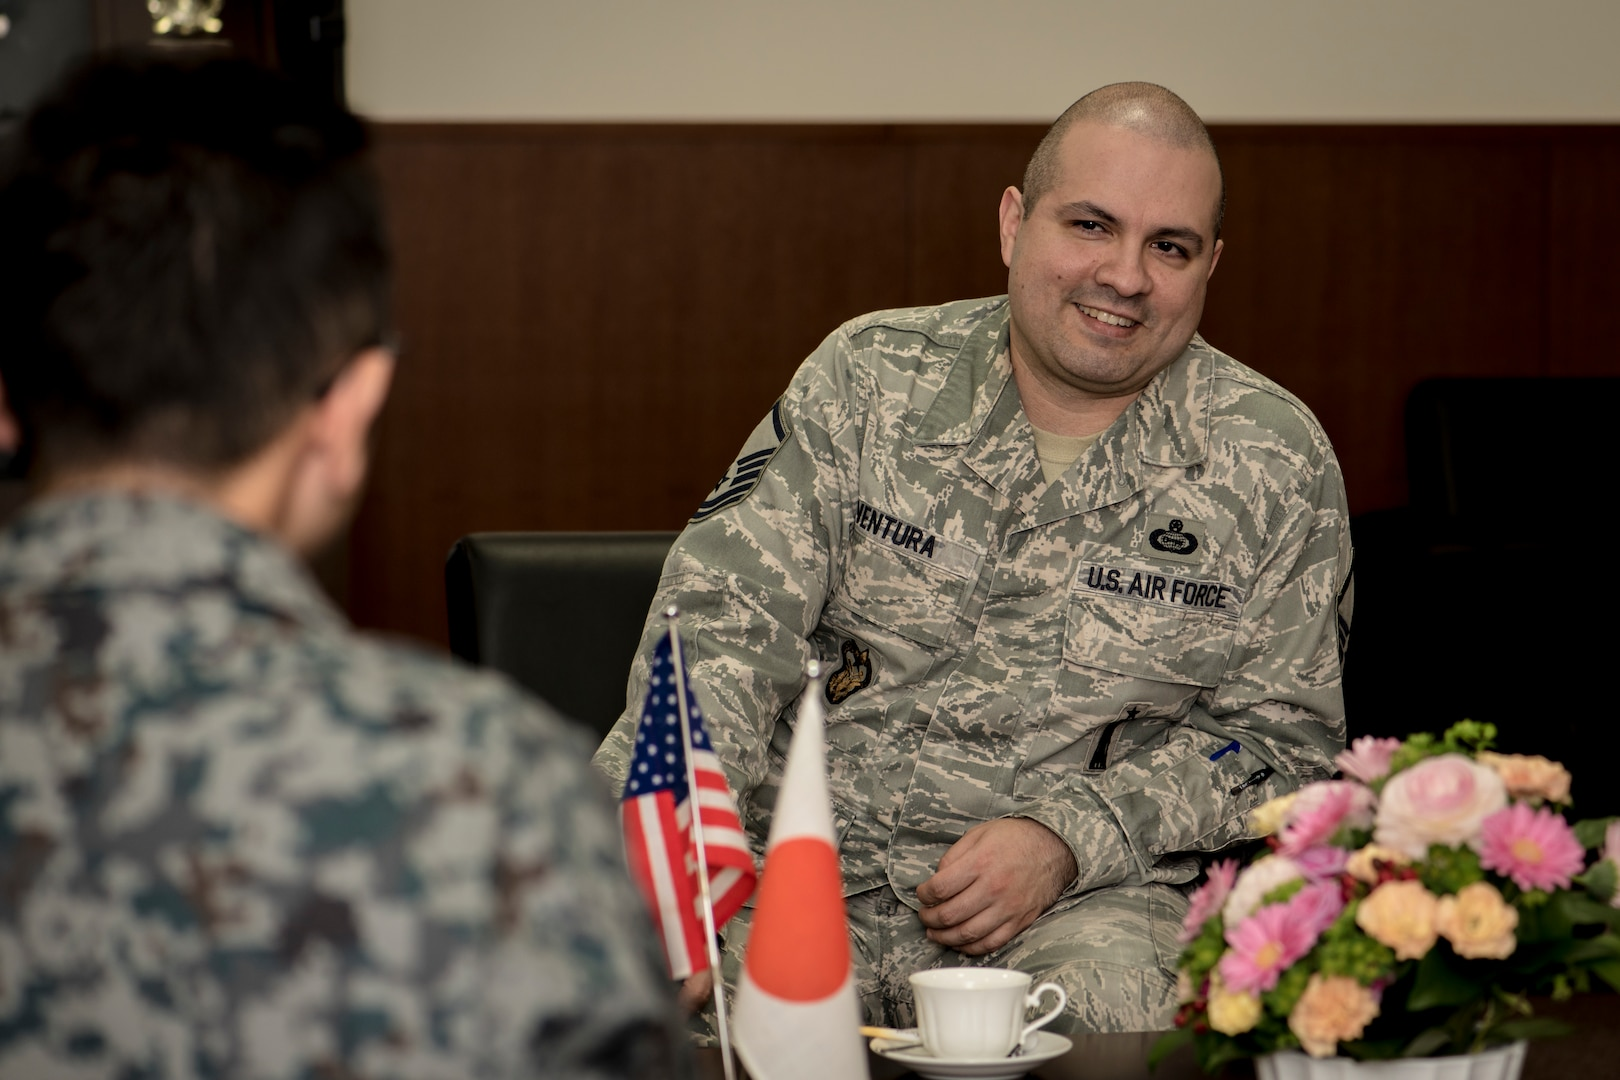 """U.S. Air Force Master Sgt. Cesar Ventura, right, a 35th Fighter Wing inspector general vertical inspections planner, and Japan Air Self-Defense Force Warrant Officer Tsuyoshi Endo, right, the former 6th Air Defense Missile Group chief and Senior Noncommissioned Officer Association president, exchange mutual thanks for Ventura's many years of service to JASDF in the 3rd Air Wing's headquarters at Misawa Air Base, Japan, Feb. 14, 2018. """"Vinny-san"""" as Endo refers to Ventura by, submitted him for his service's Special Class Award and on Dec. 13, 2017, JASDF Warrant Officer Junji Miura, the 3rd Air Wing command chief, presented the award on behalf of the Area Defense Command in Tokyo. (U.S. Air Force photo by Tech. Sgt. Benjamin W. Stratton)"""